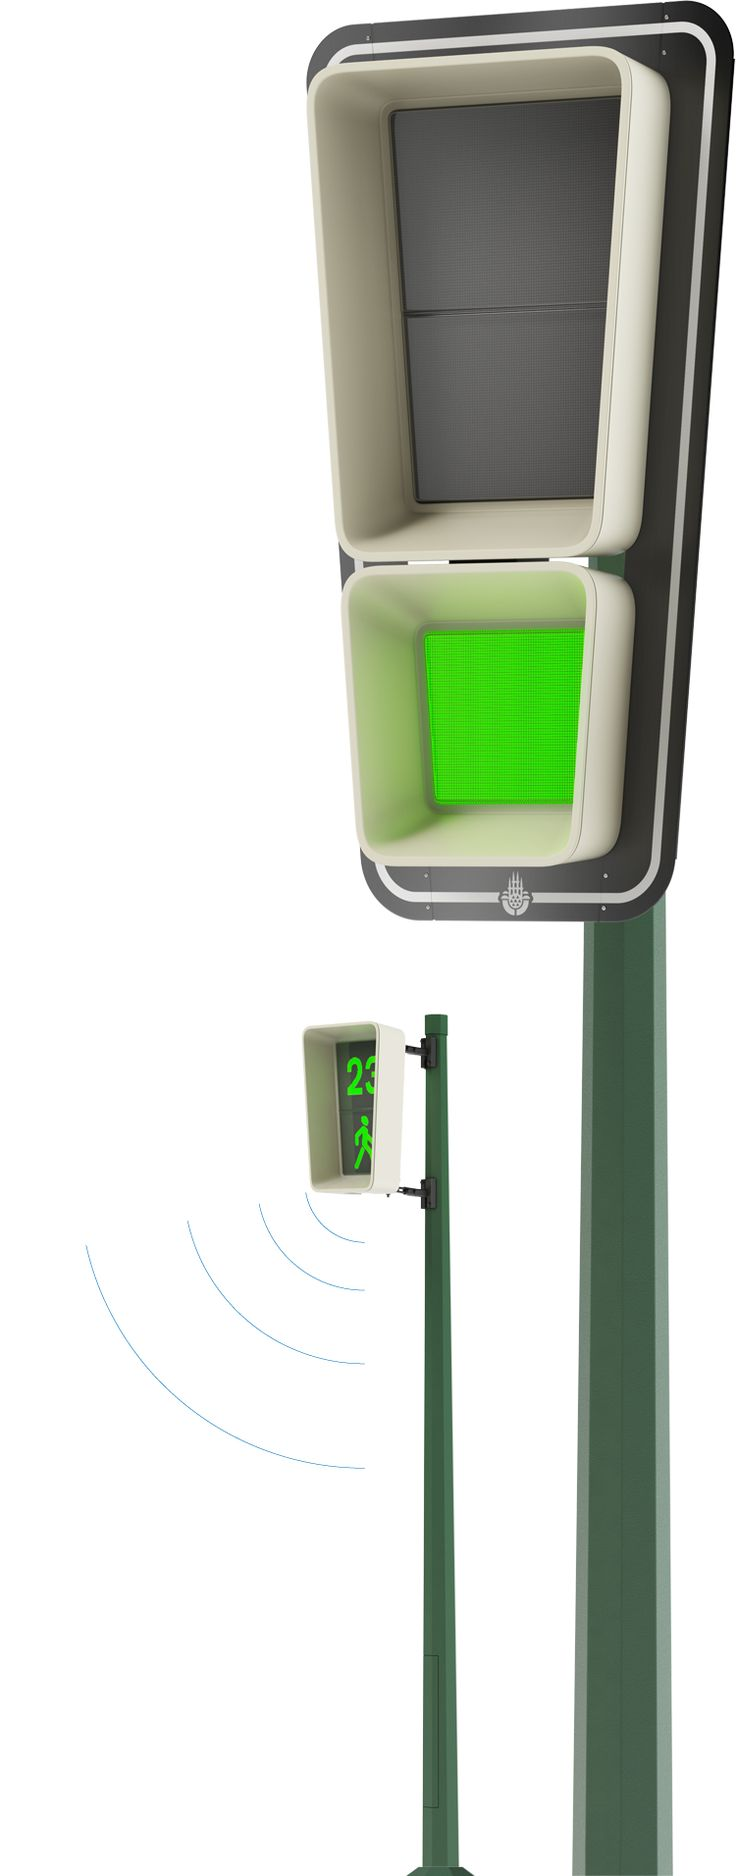 Istanbul Isiklarius traffic lights. Safety    Isiklarius is equipped with a system developed in our studio that detects visually impaired and handicapped pedestrians. It uses special icons on the signal panel to warn drivers when such persons approach the crossing.    There is a sound signal for visually impaired that also alerts other pedestrians and drivers.